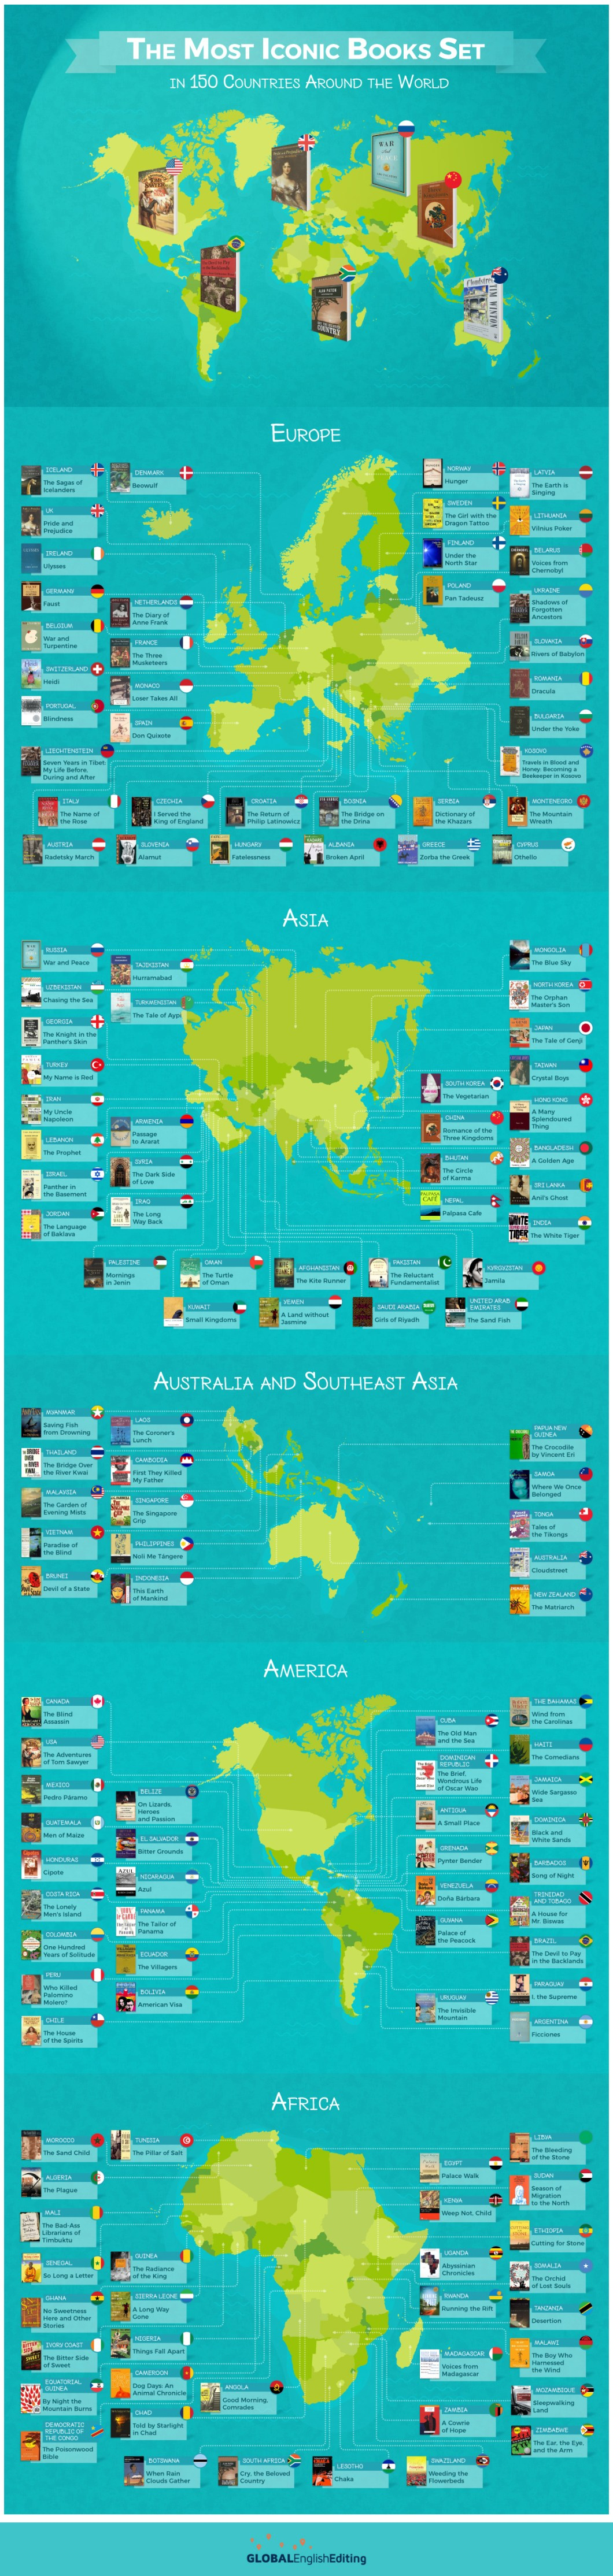 Want to Travel the World? Make Books Your Transporter! - Infographic